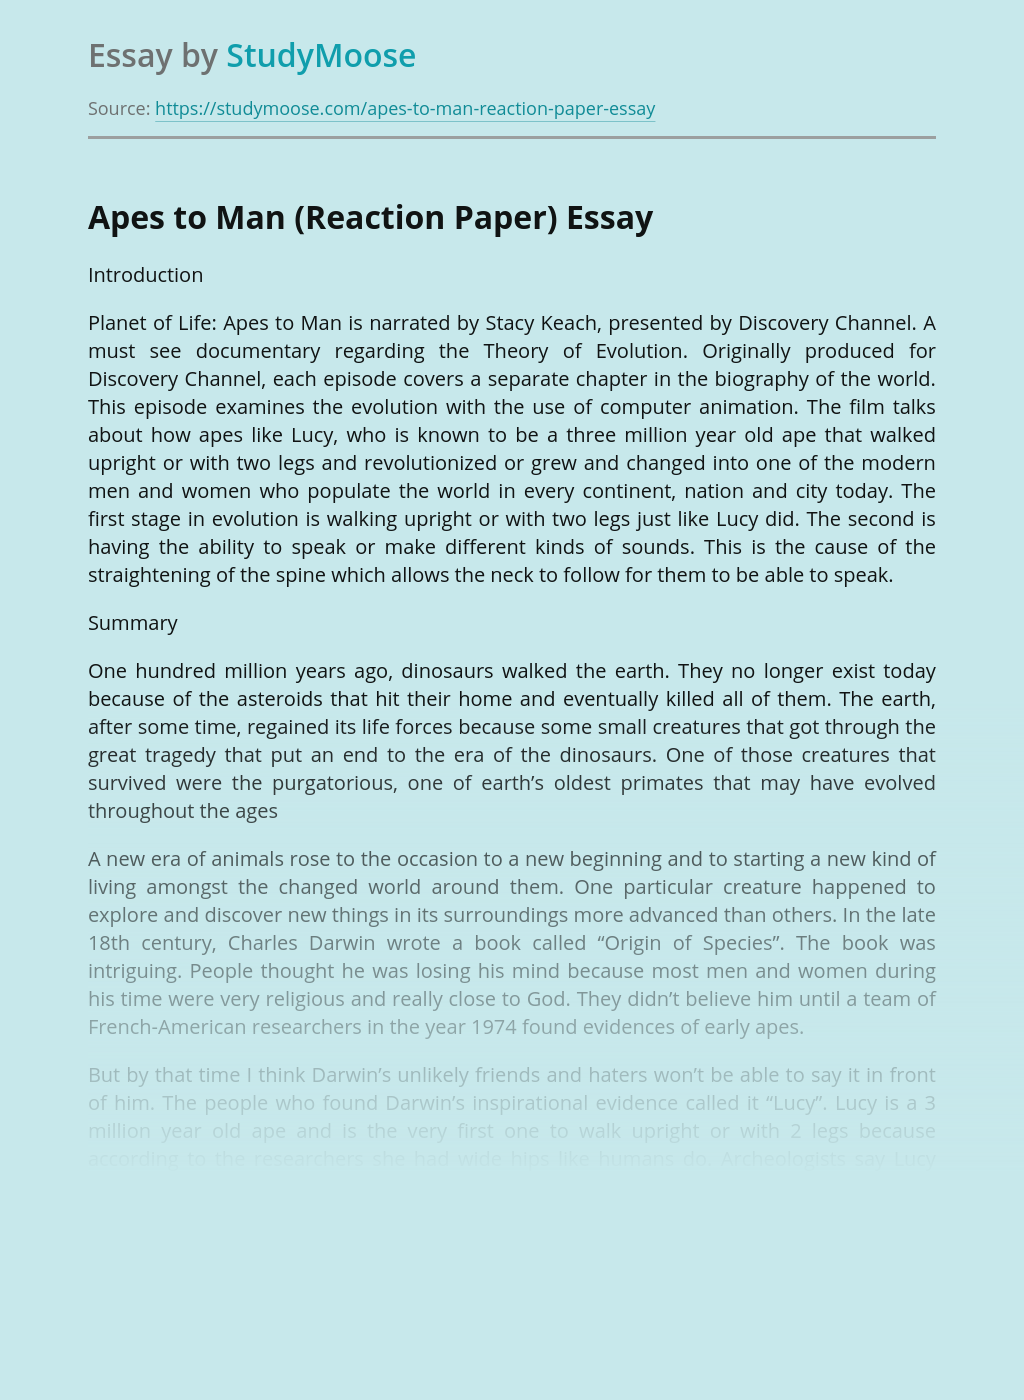 Apes to Man (Reaction Paper)